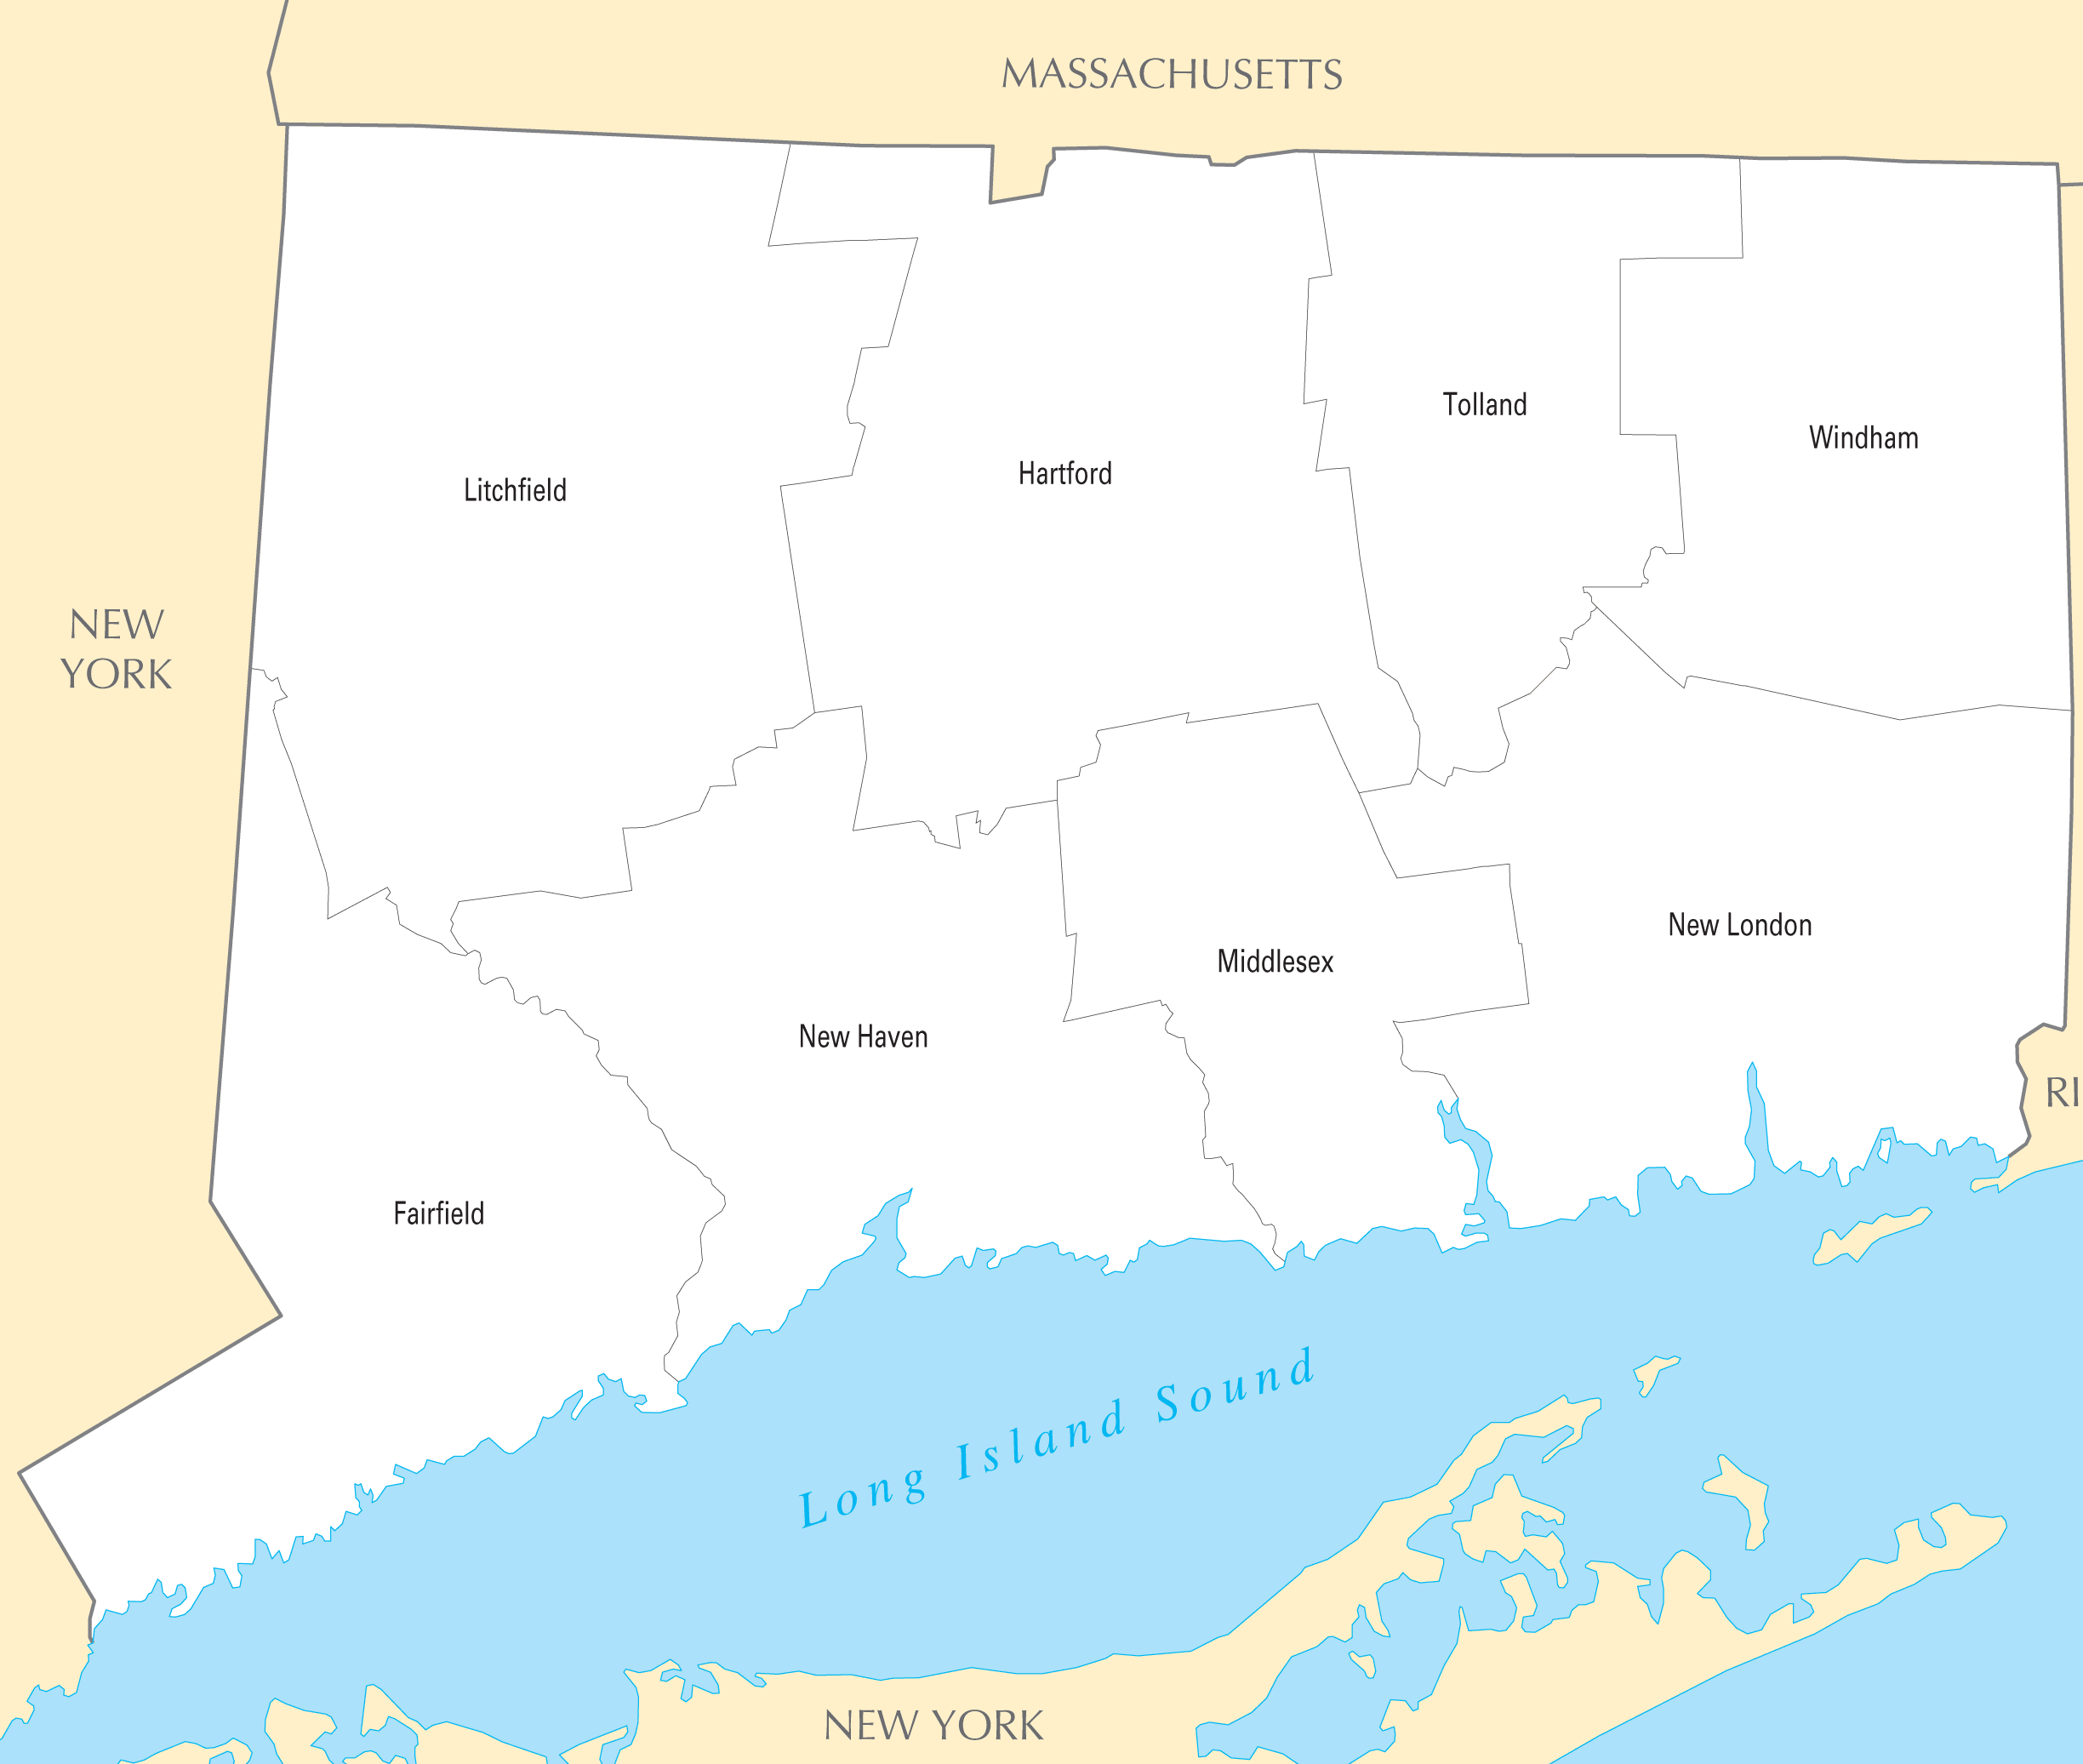 Connecticut County Map Mapsofnet - Connecticut county map